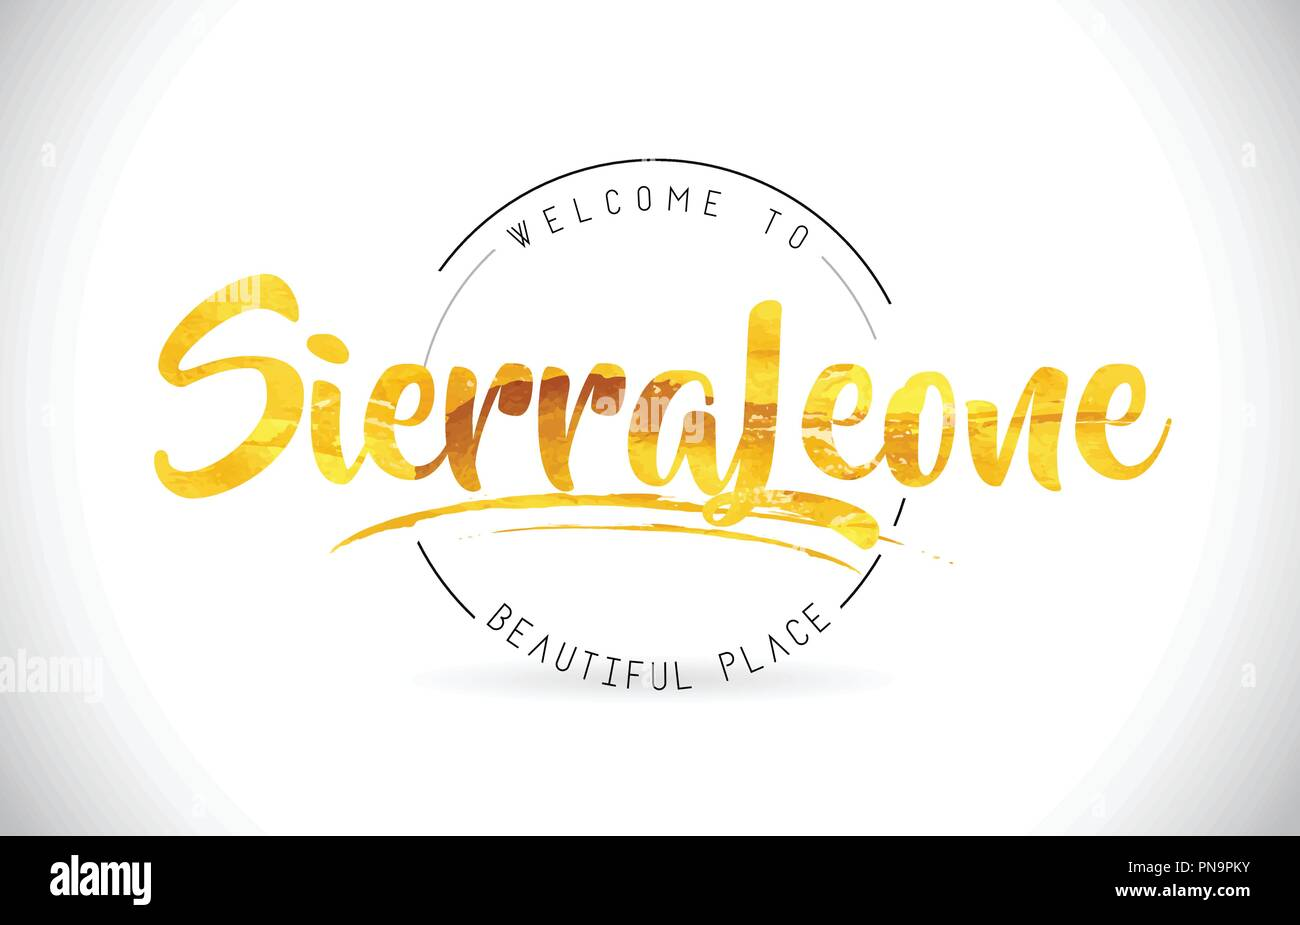 SierraLeone Welcome To Word Text with Handwritten Font and Golden Texture Design Illustration Vector. - Stock Image